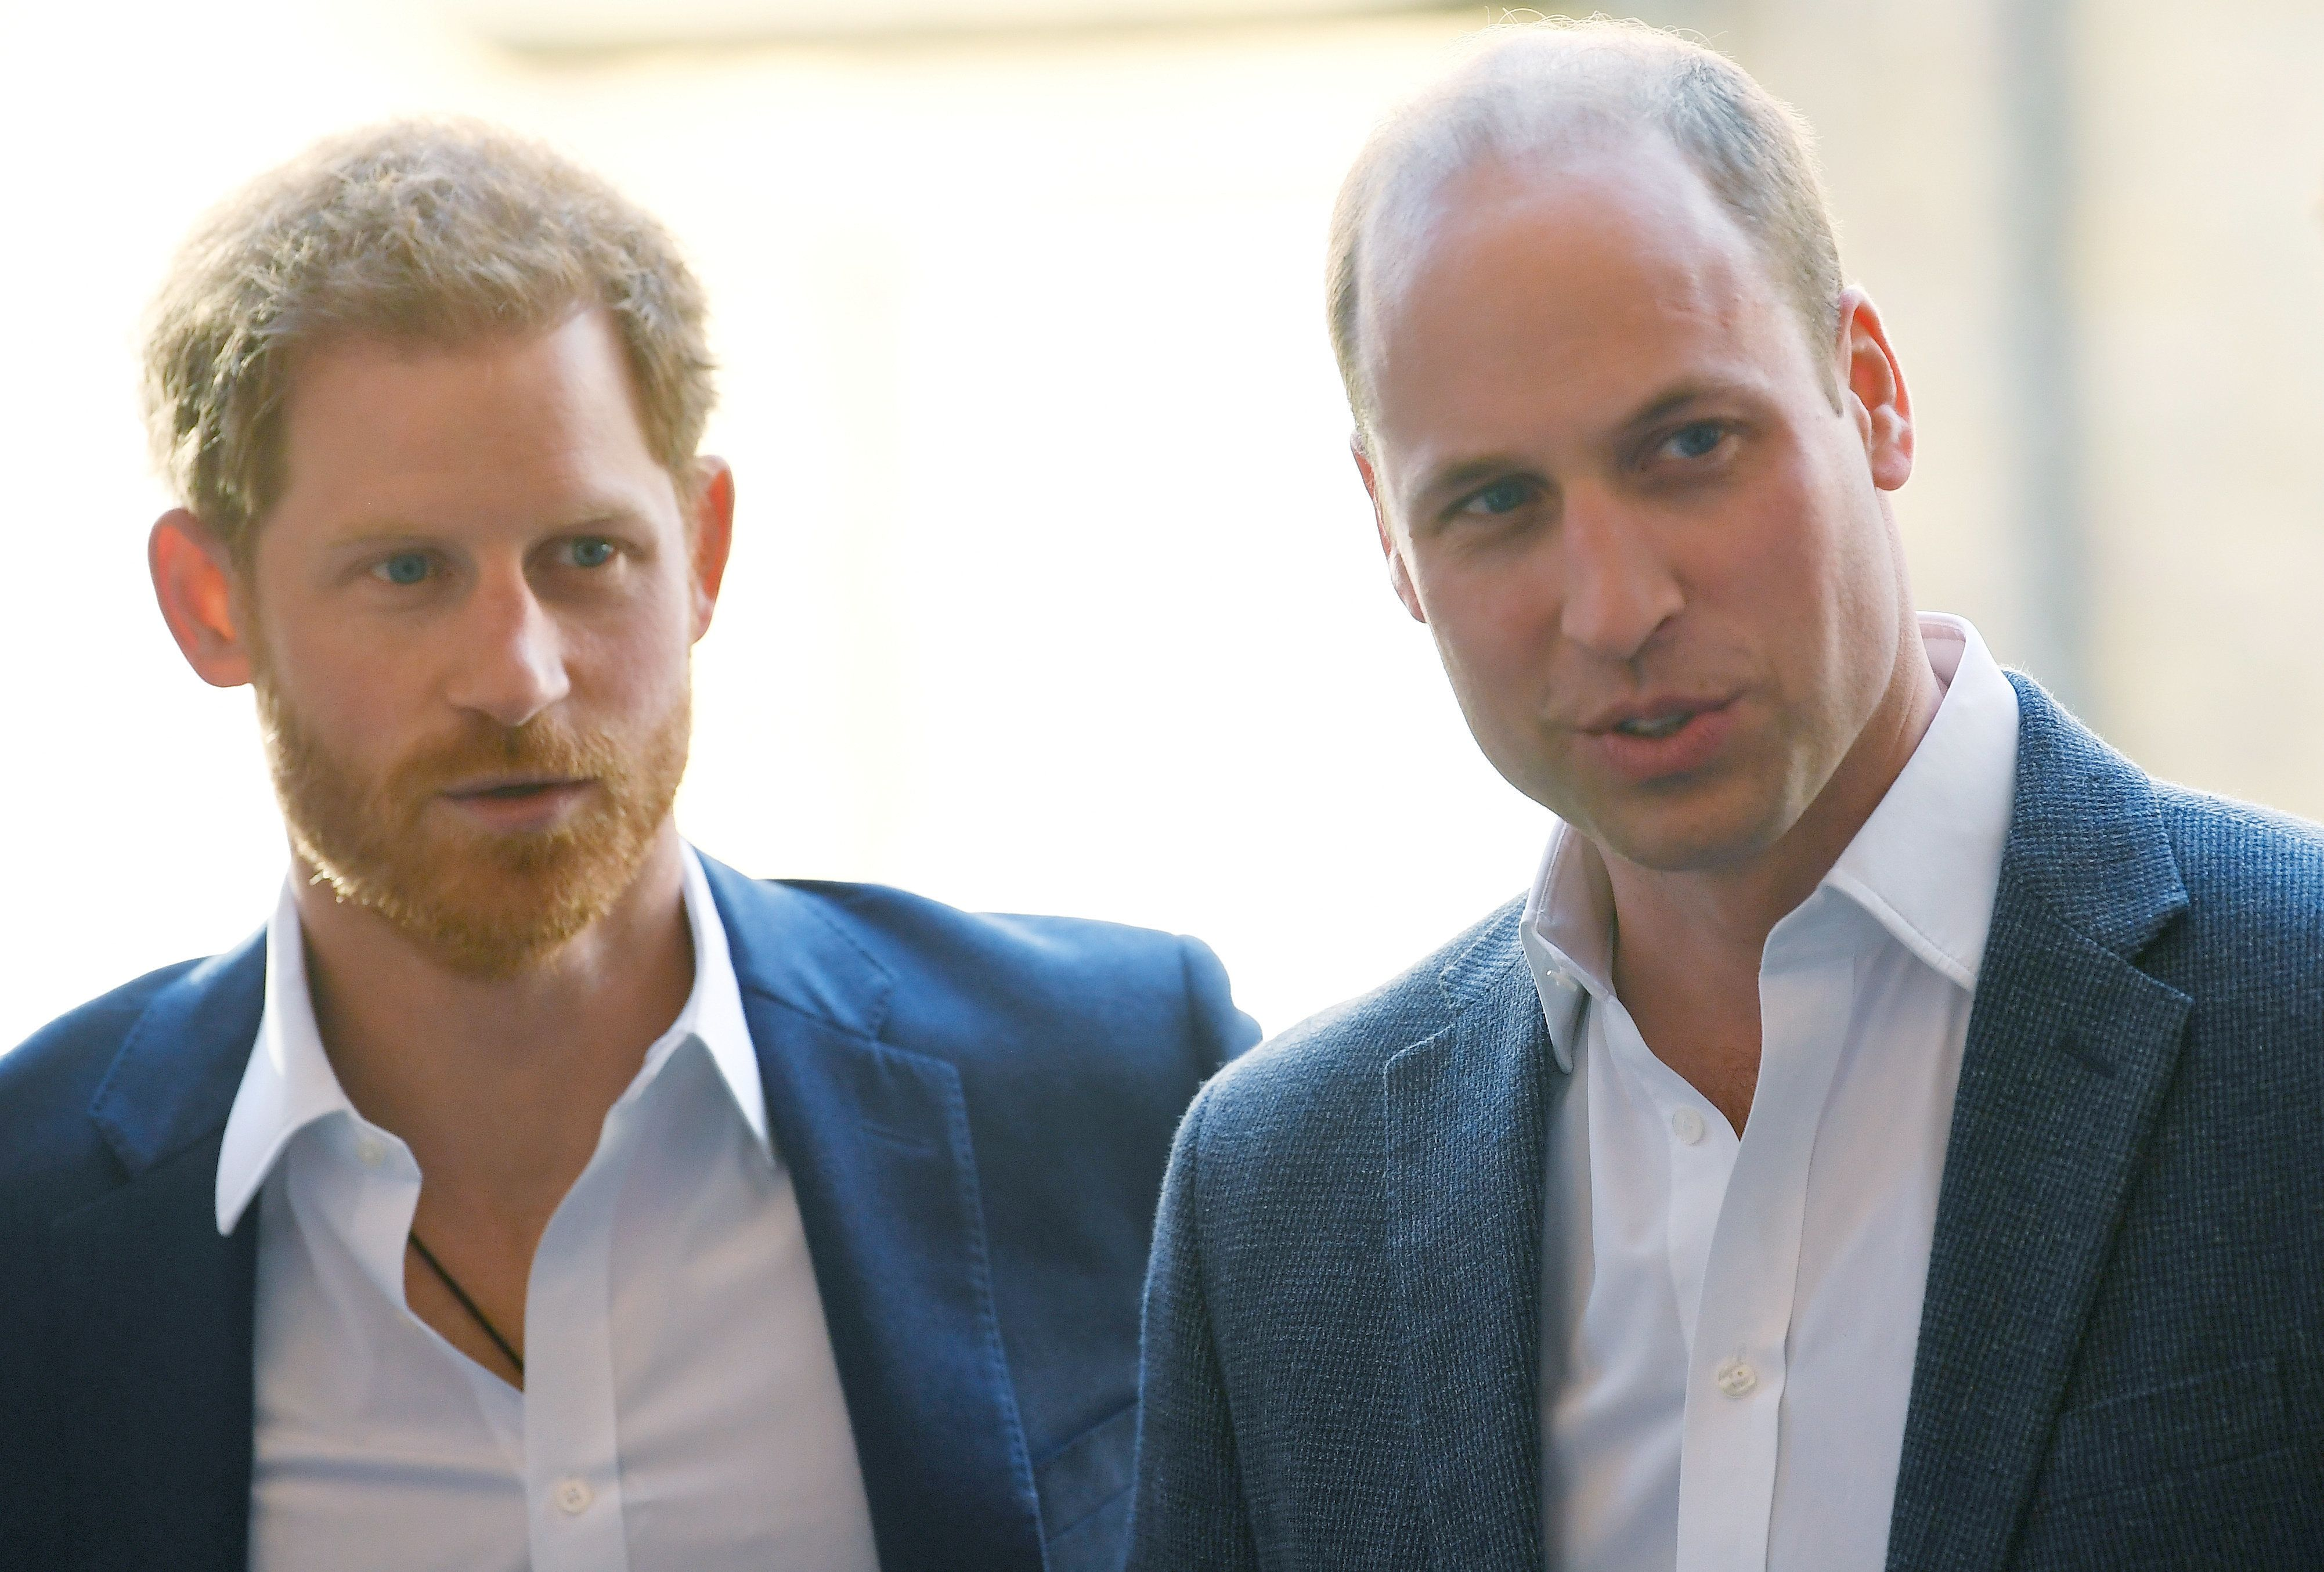 Prince Harry and Prince William attend the opening of the Greenhouse Sports Centre in London on April